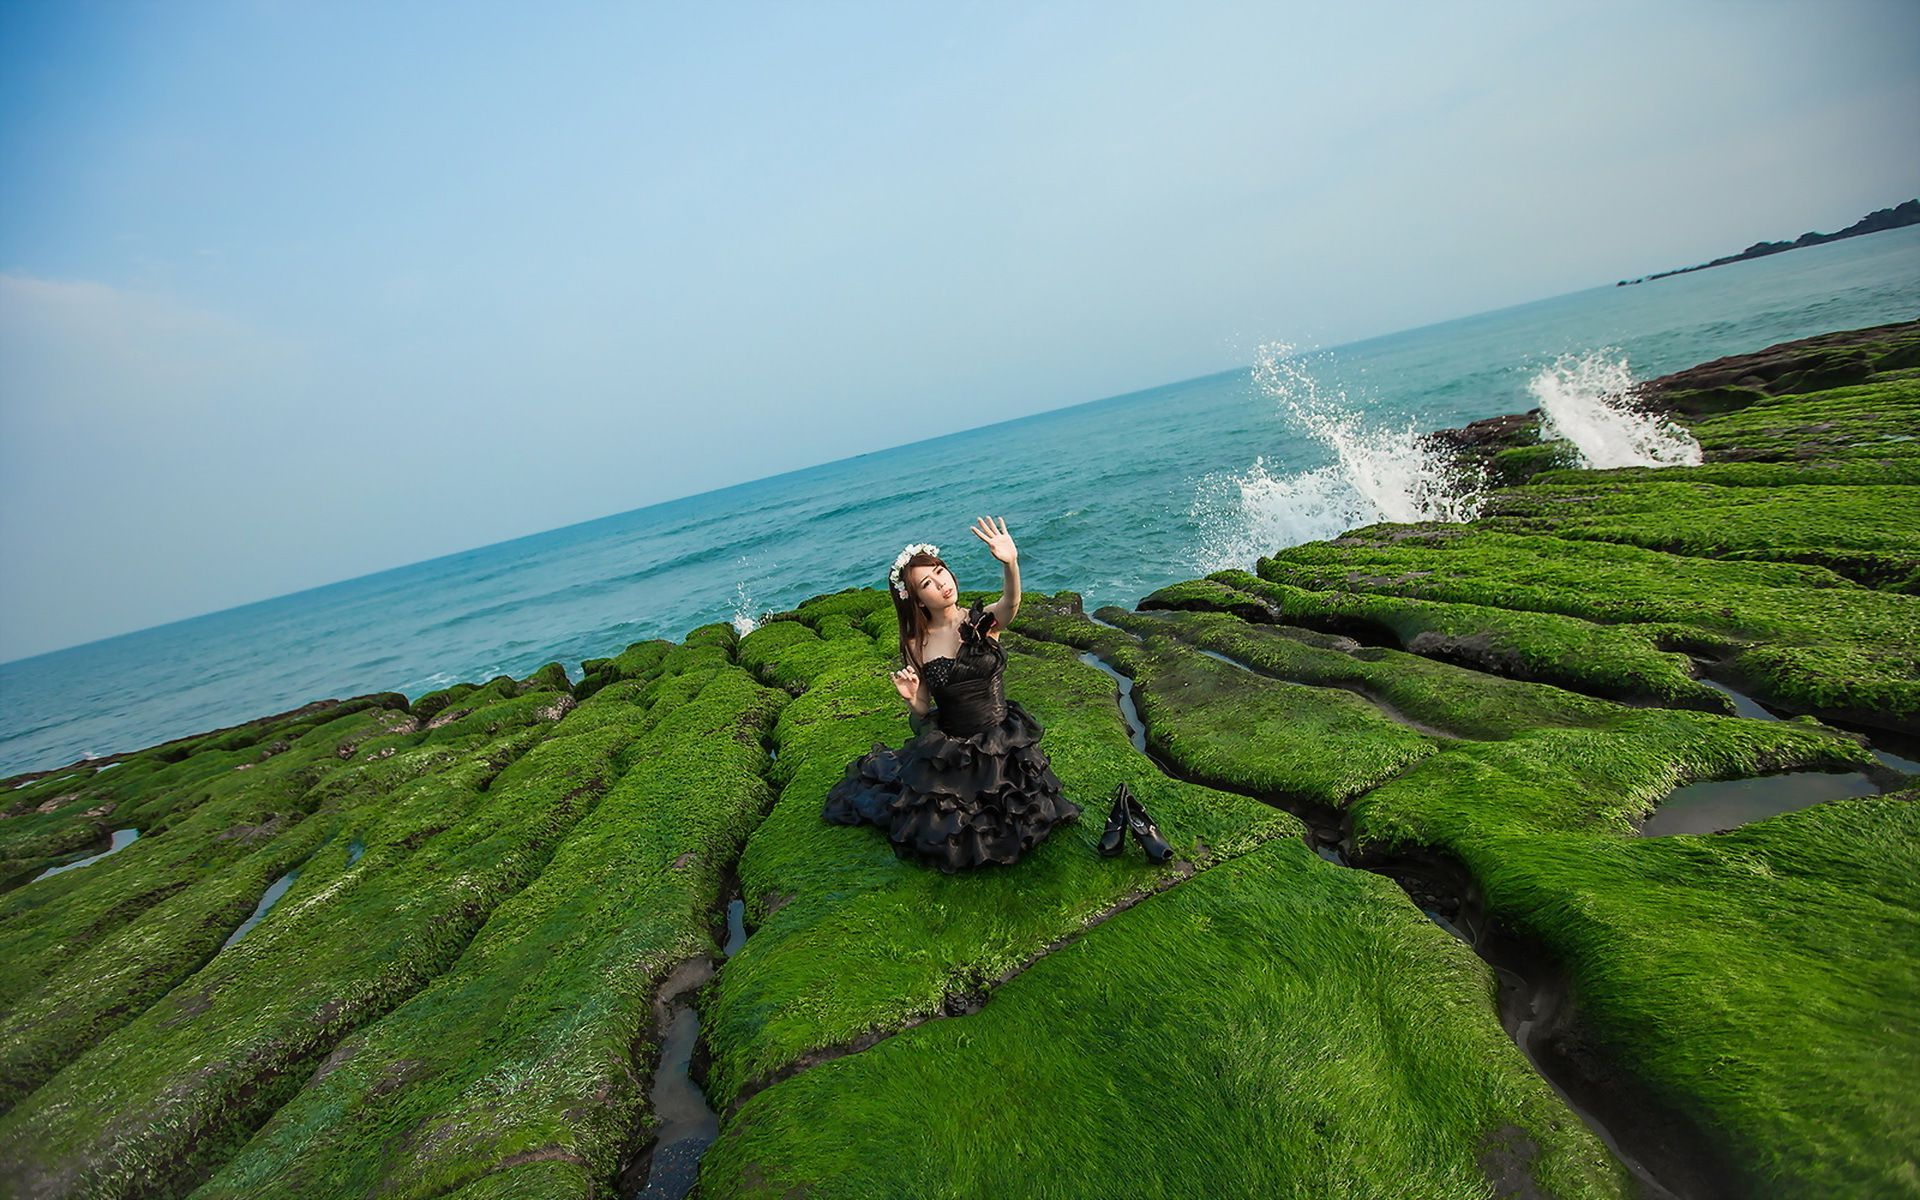 Woman on the mossy rocks